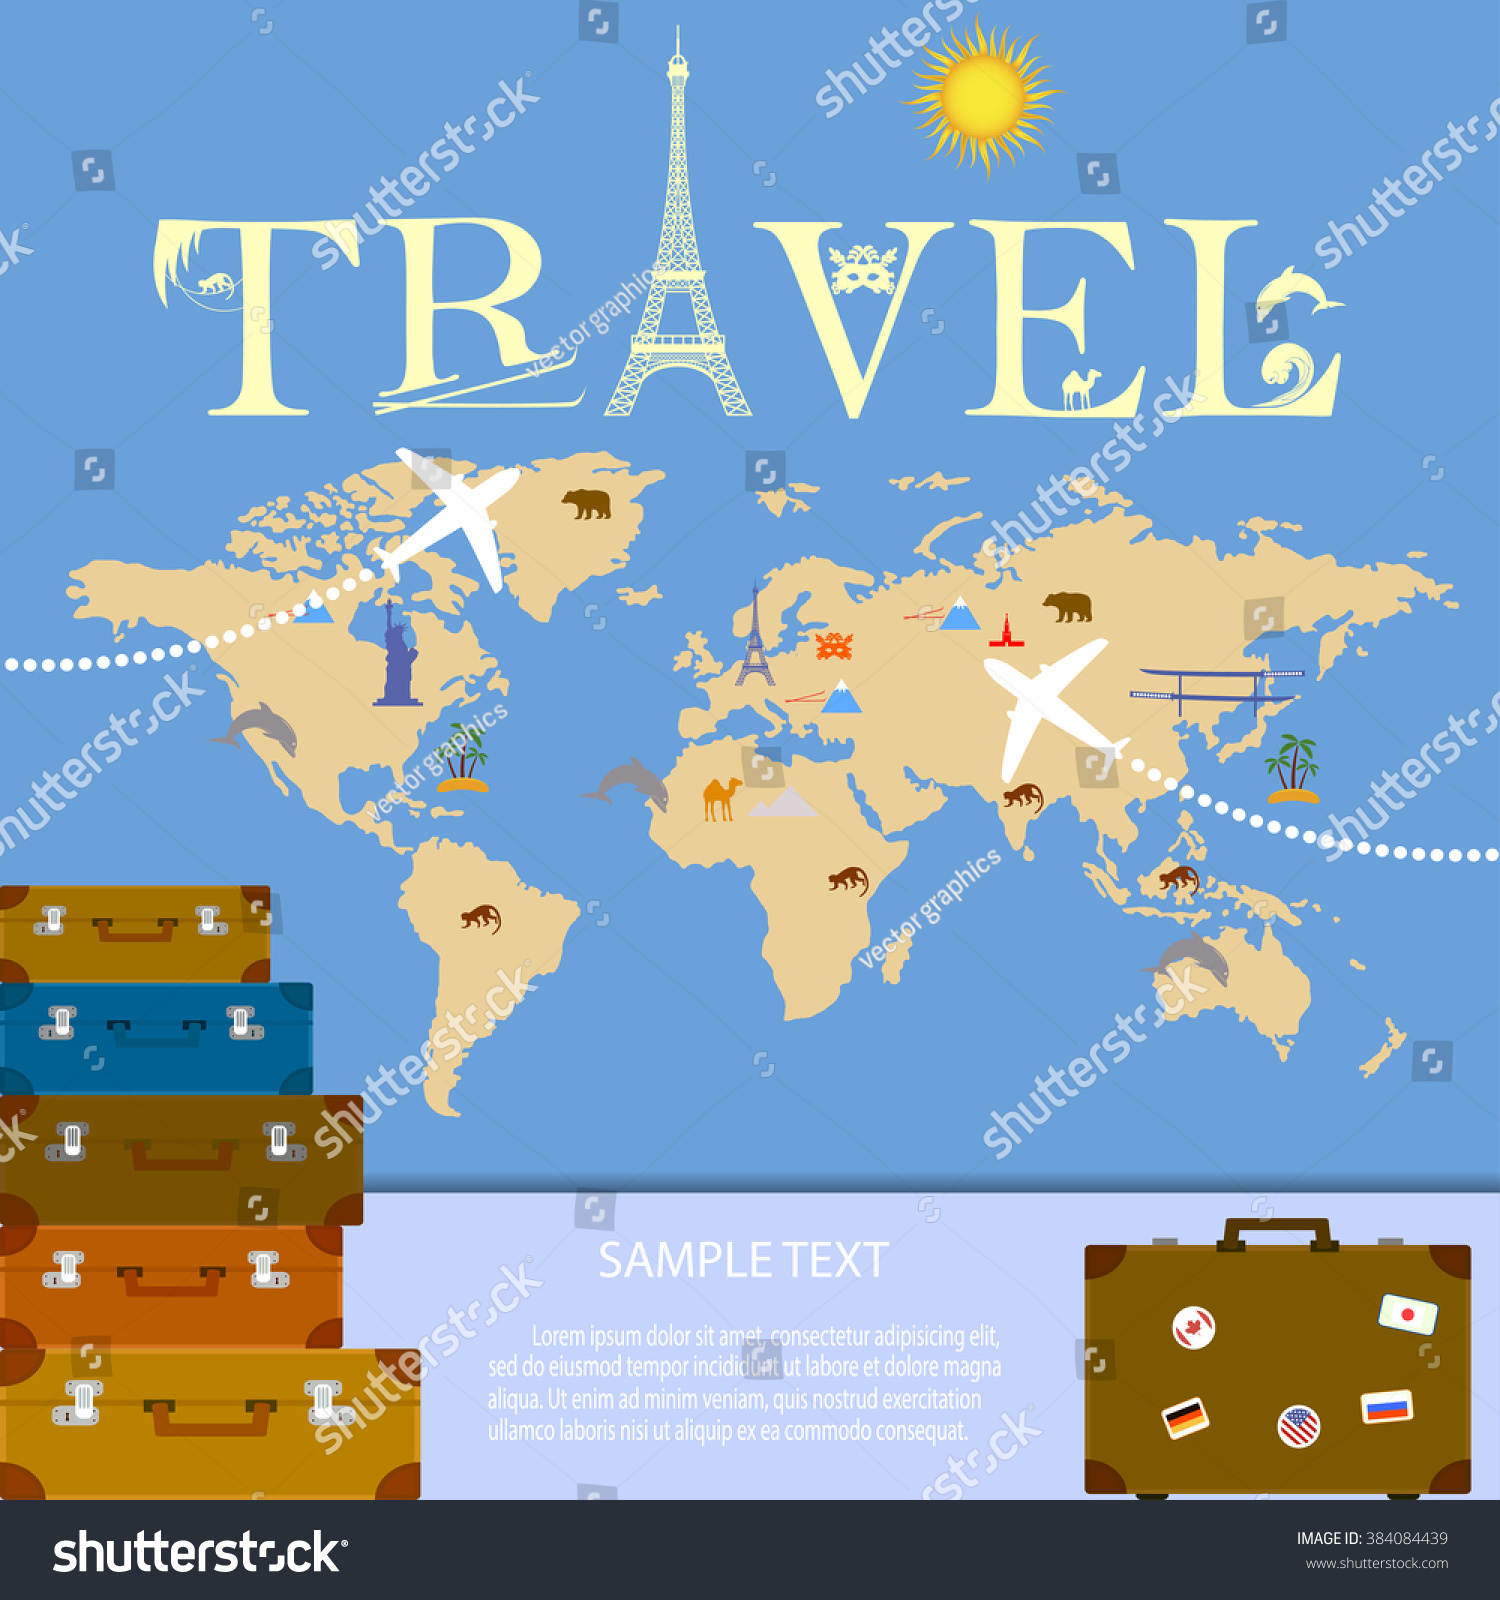 Creative logo travel company travel tourism stock vector 384084439 creative logo for travel company travel and tourism worldwide world map with landmarks for gumiabroncs Choice Image